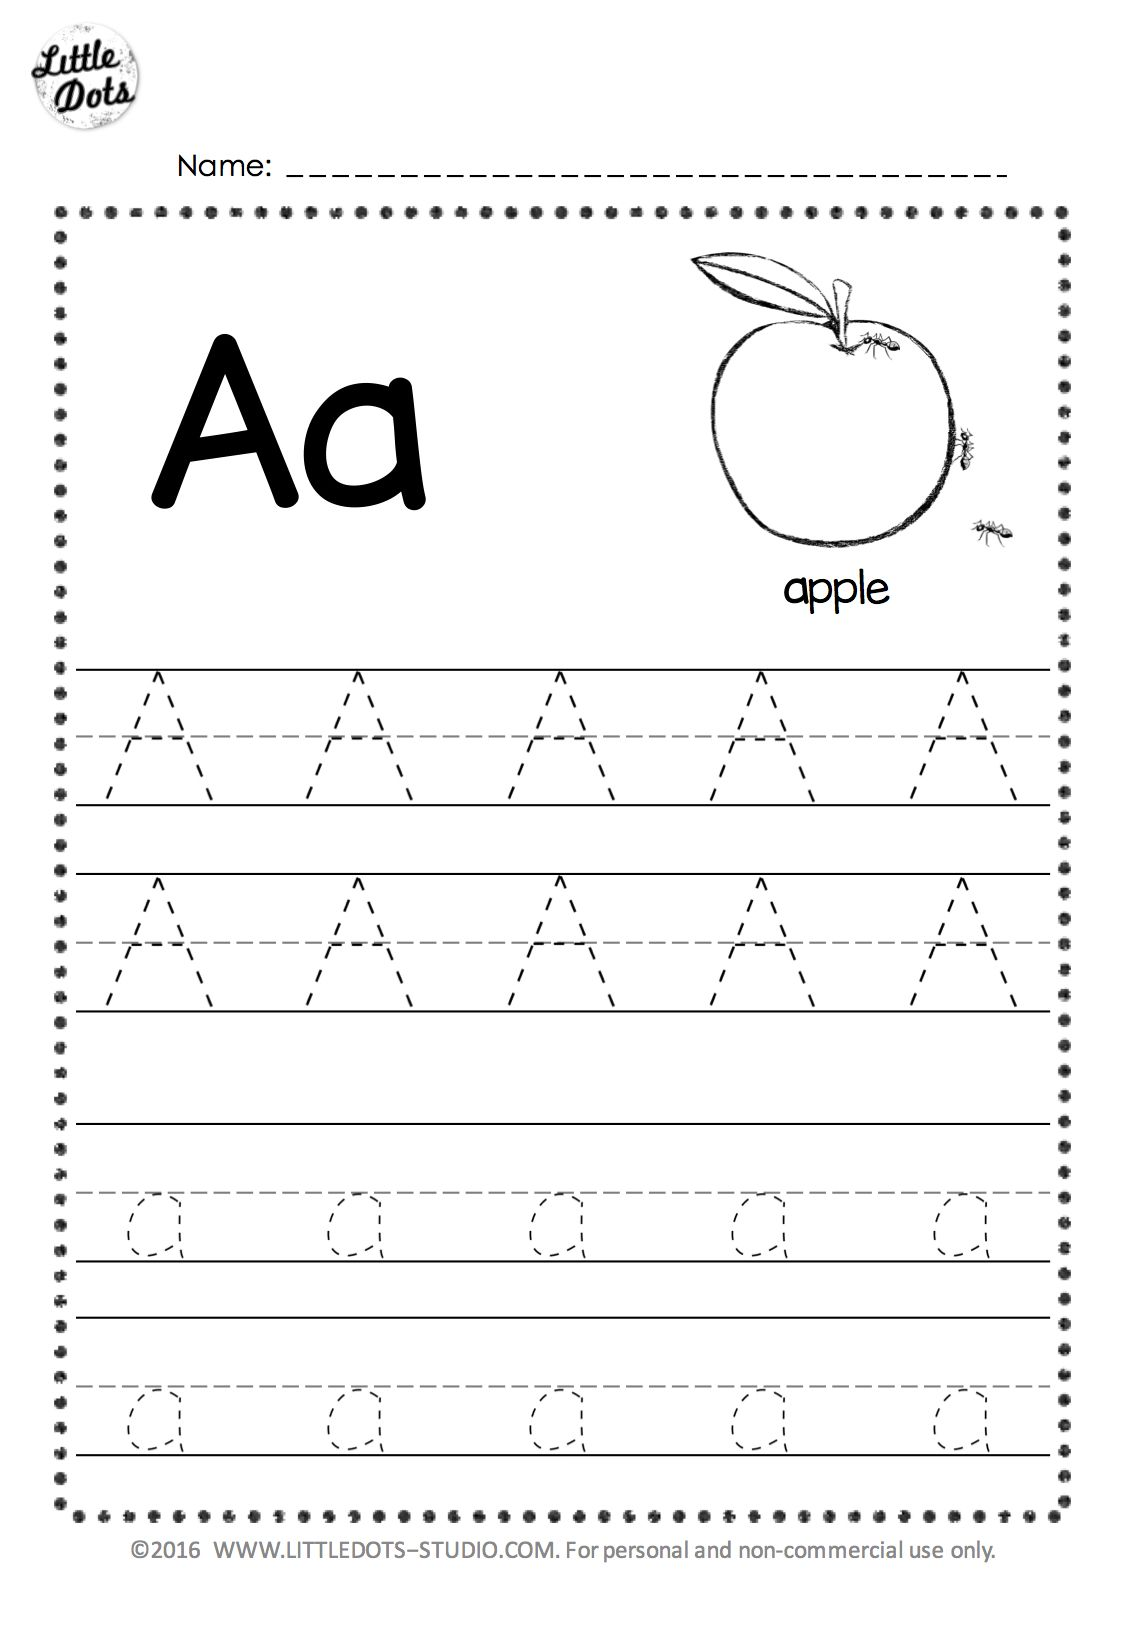 Free Letter A Tracing Worksheets Tracing Worksheets Preschool Alphabet Tracing Worksheets Free Printable Alphabet Worksheets